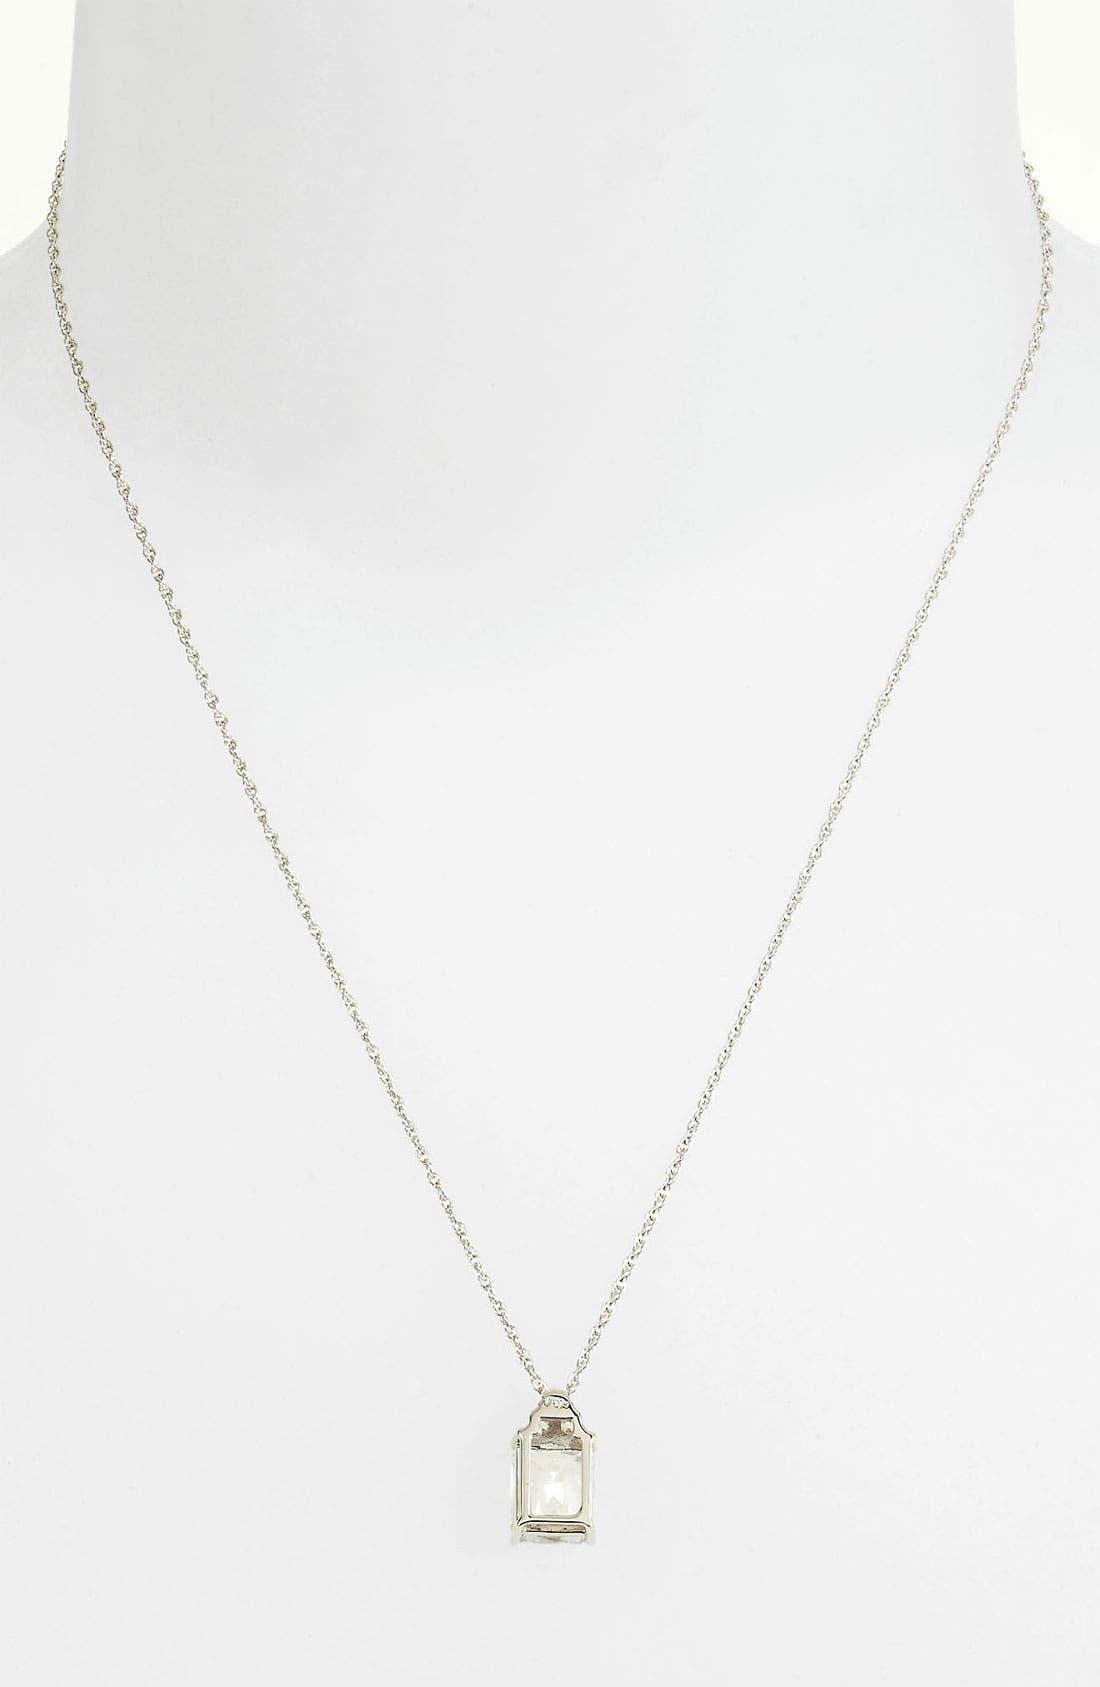 Alternate Image 1 Selected - Nordstrom Pendant Necklace